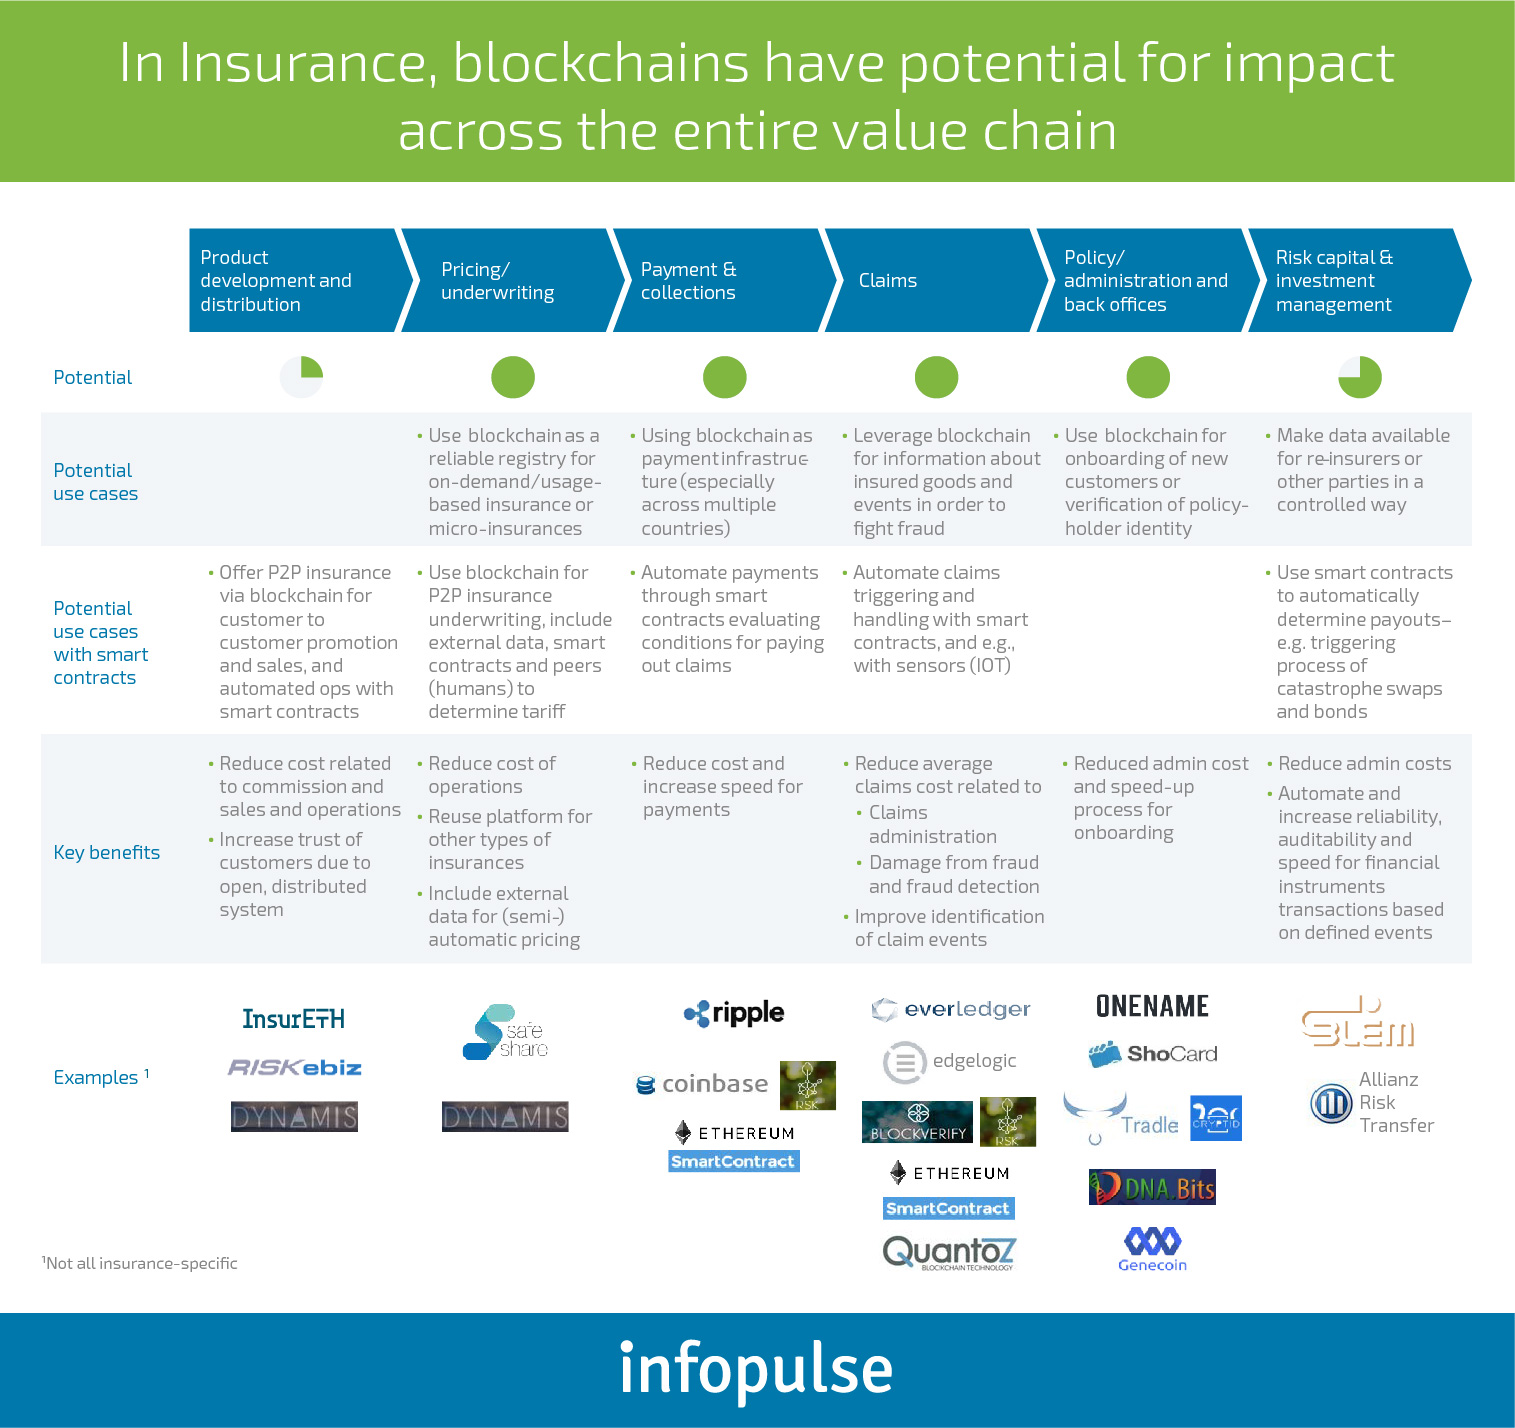 Optimizing the Insurance Industry with Blockchain  - Infopulse - 2